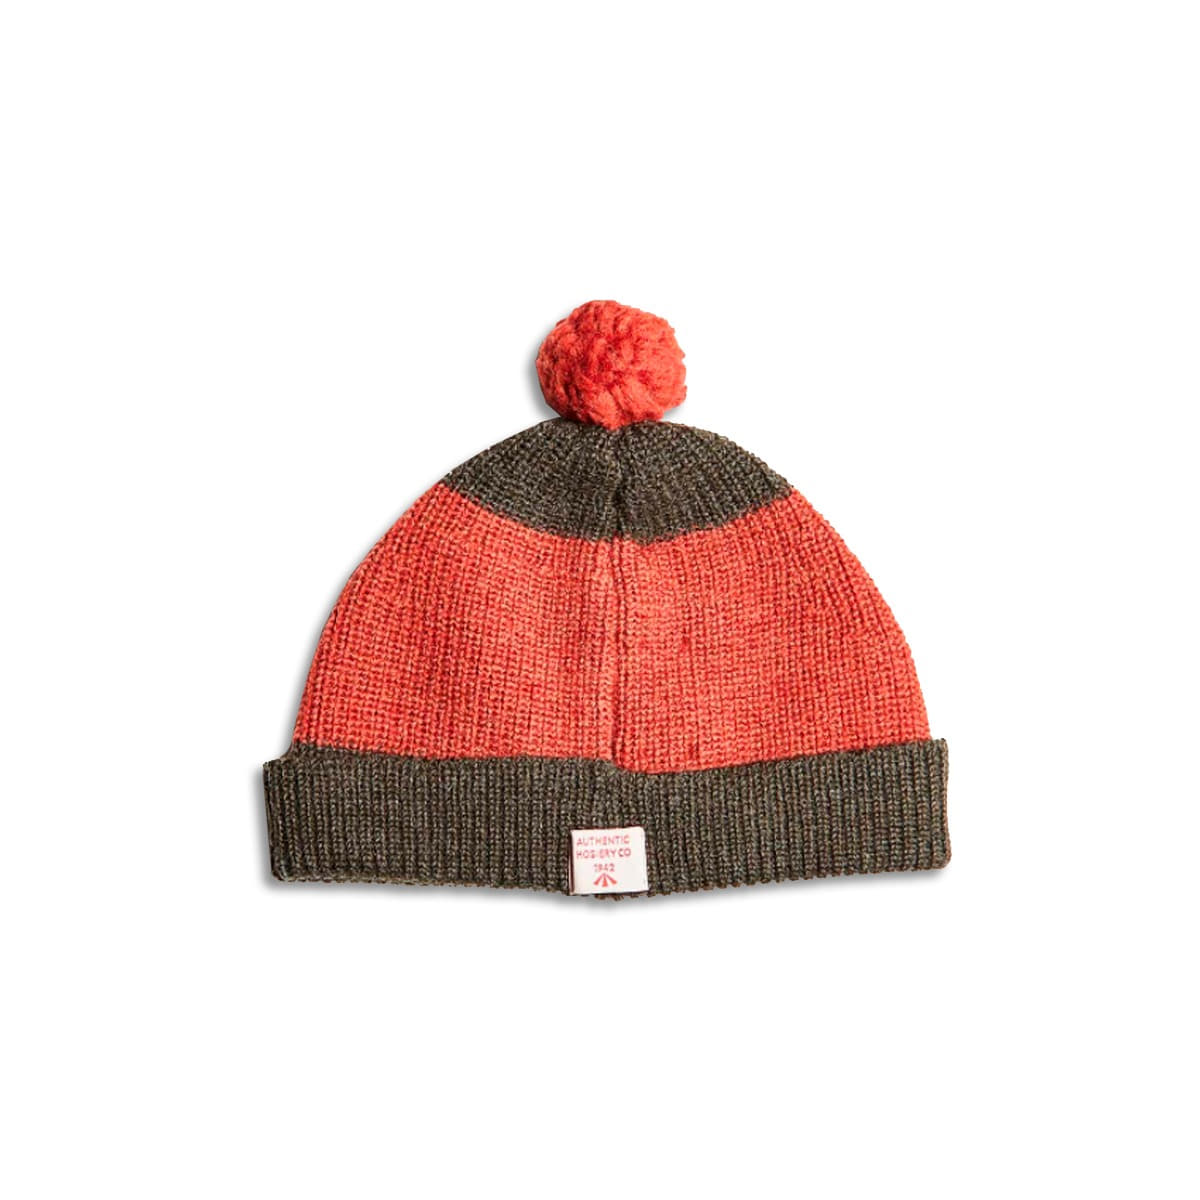 [NIGEL CABOURN] STRIPED POM POM BEANIE 'ORANGE & ARMY'